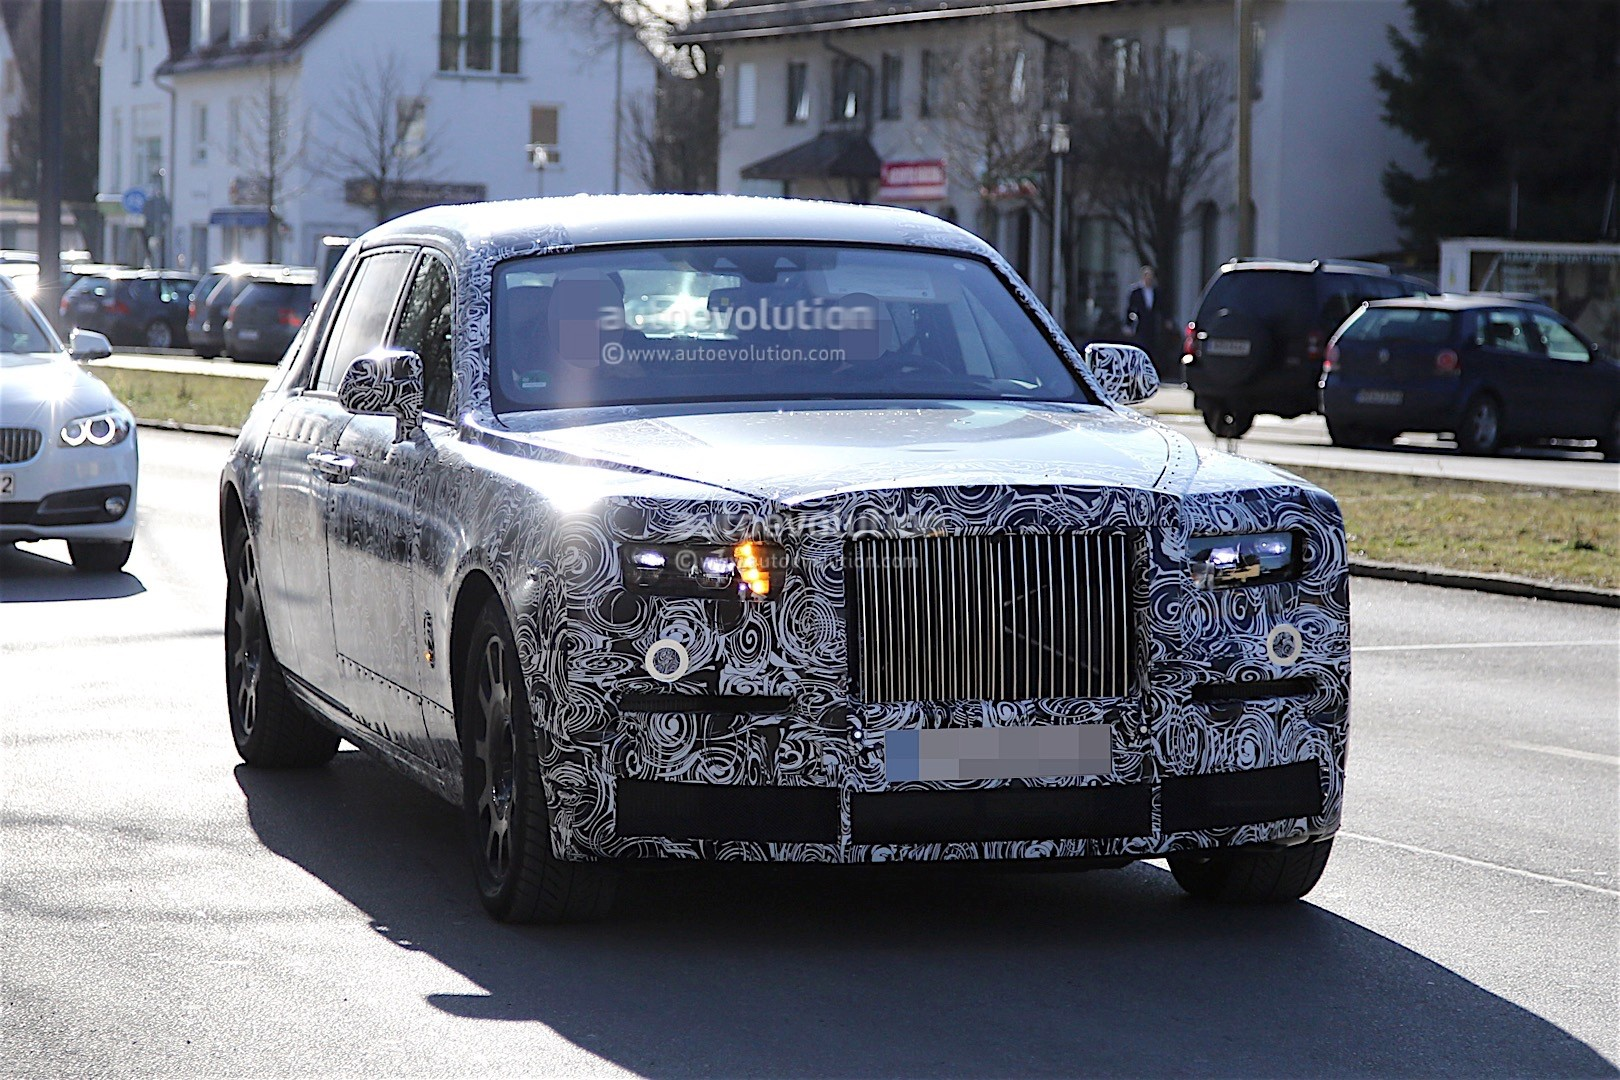 2018 Rolls Royce Phantom Spied With No Visible Major